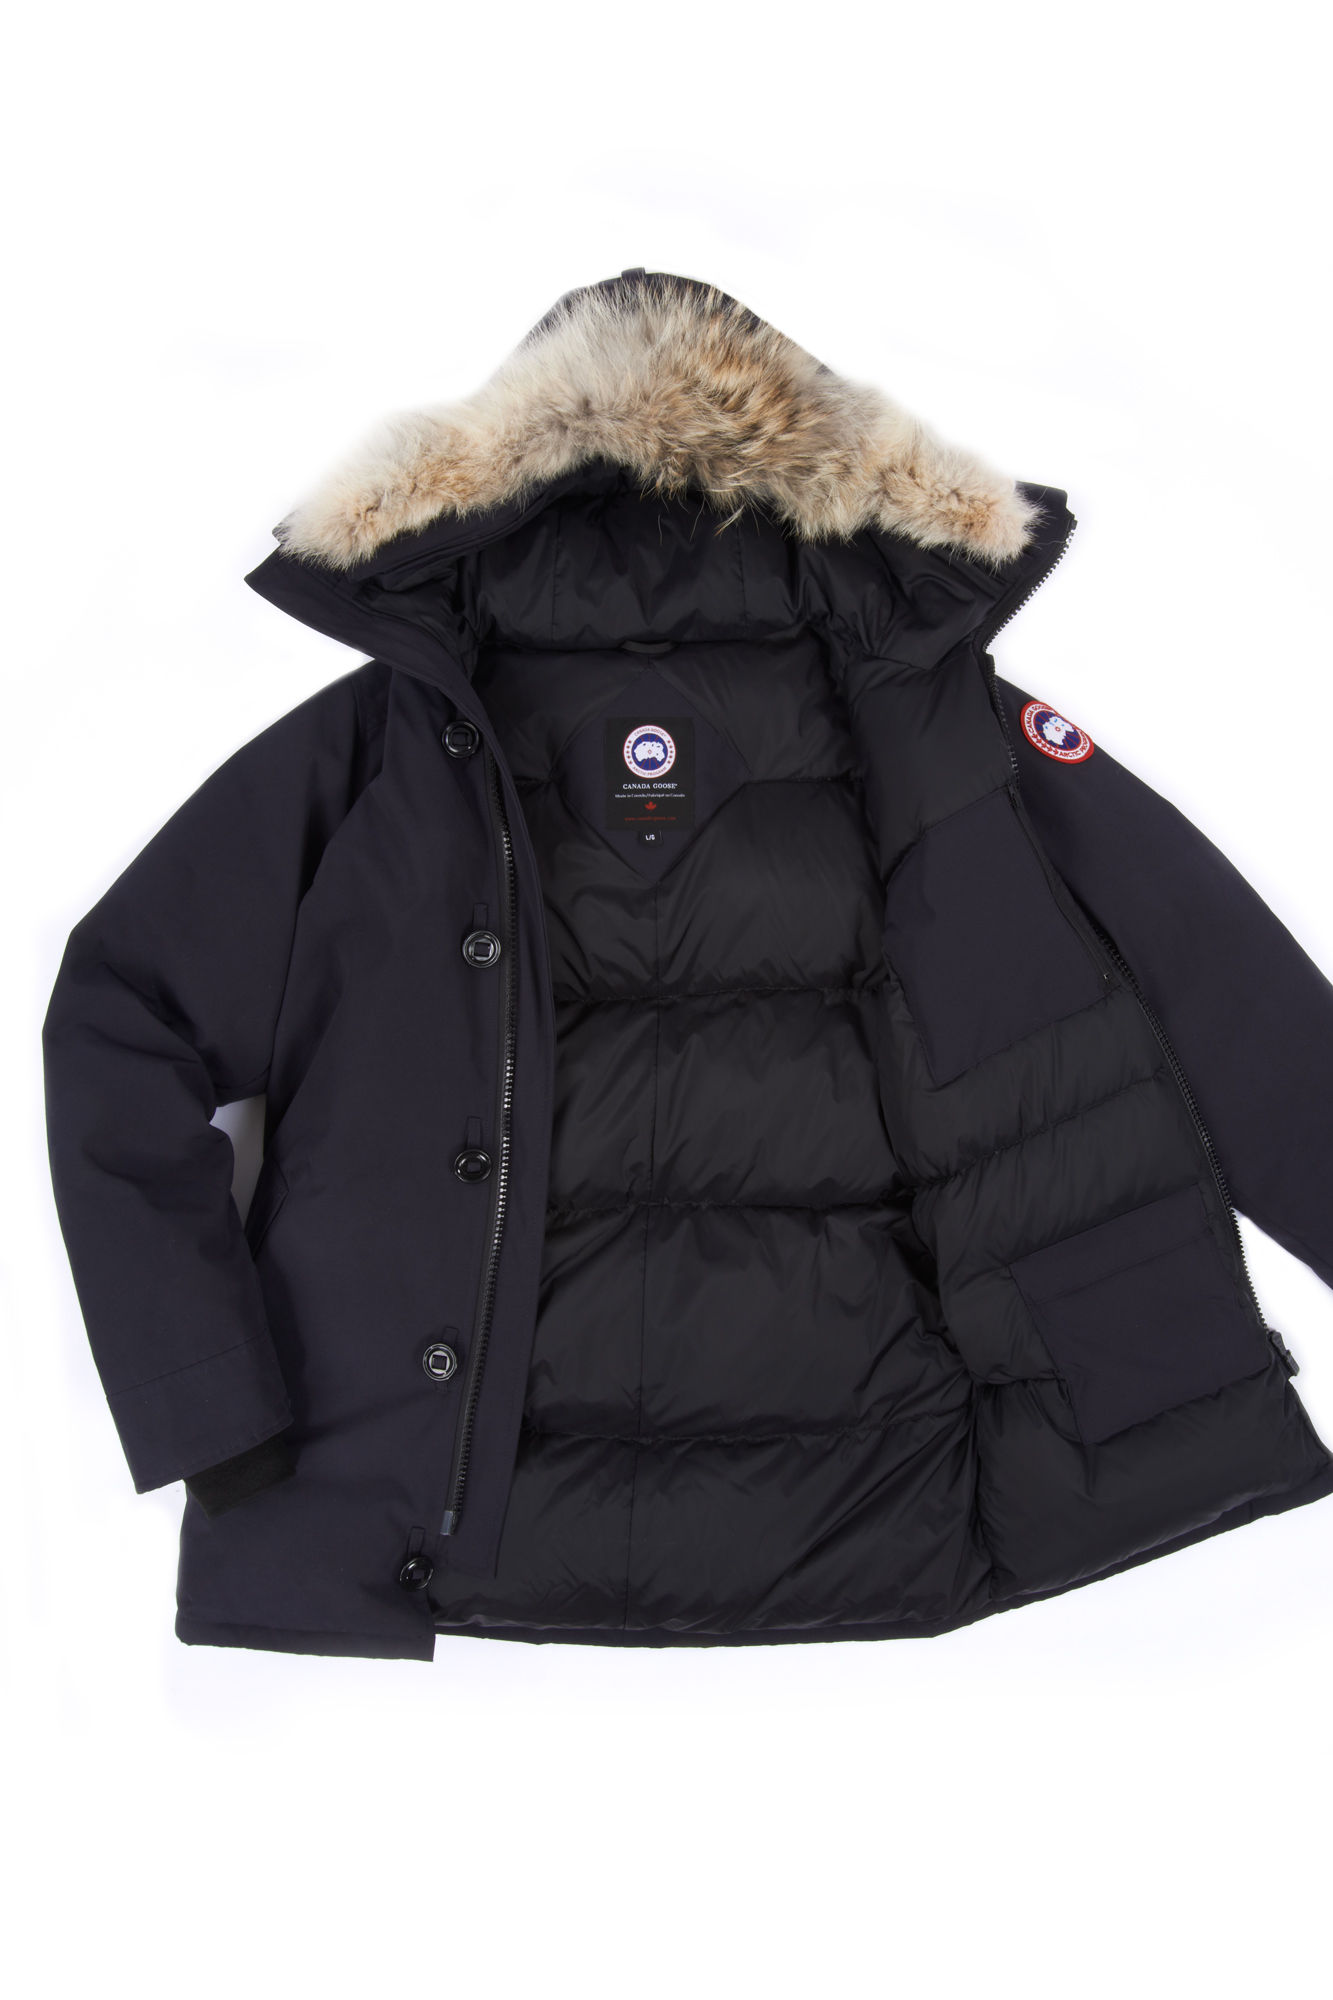 2d744066cd0 Canada Goose Chateau Parka. click on thumbnail to zoom